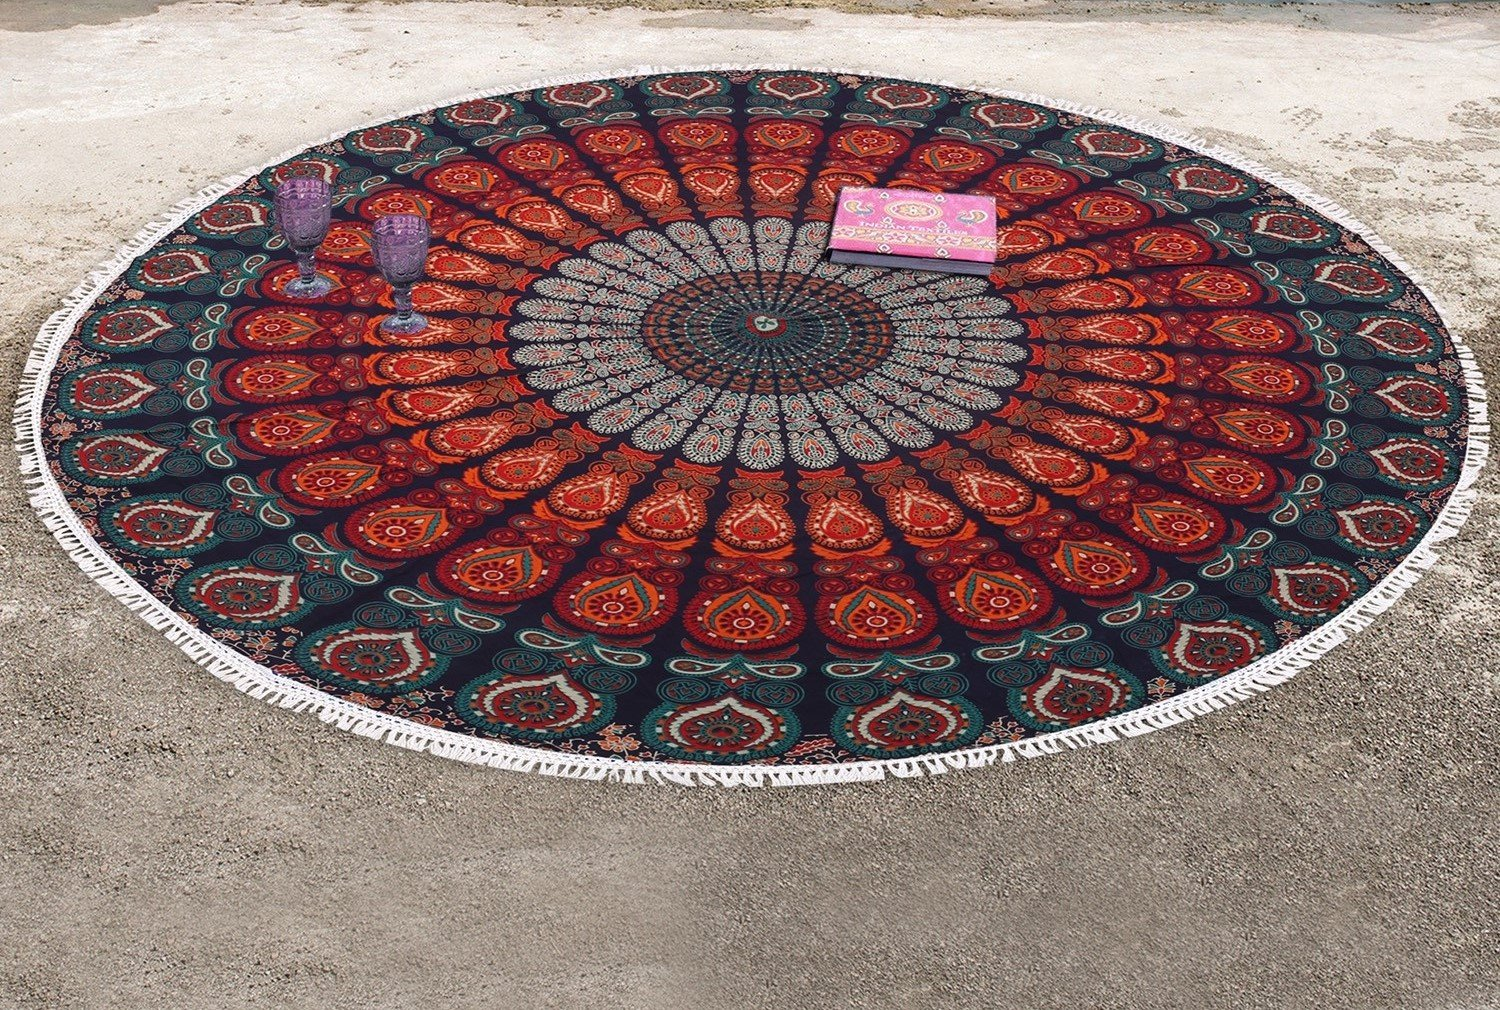 (Roundie 100cm, Purple Pink) Bless International Indian hippie Bohemian Psychedelic Peacock Mandala Wall hanging Bedding Tapestry (Purple Pink, Roundie 100cm) B079X4S6RM Roundie 40